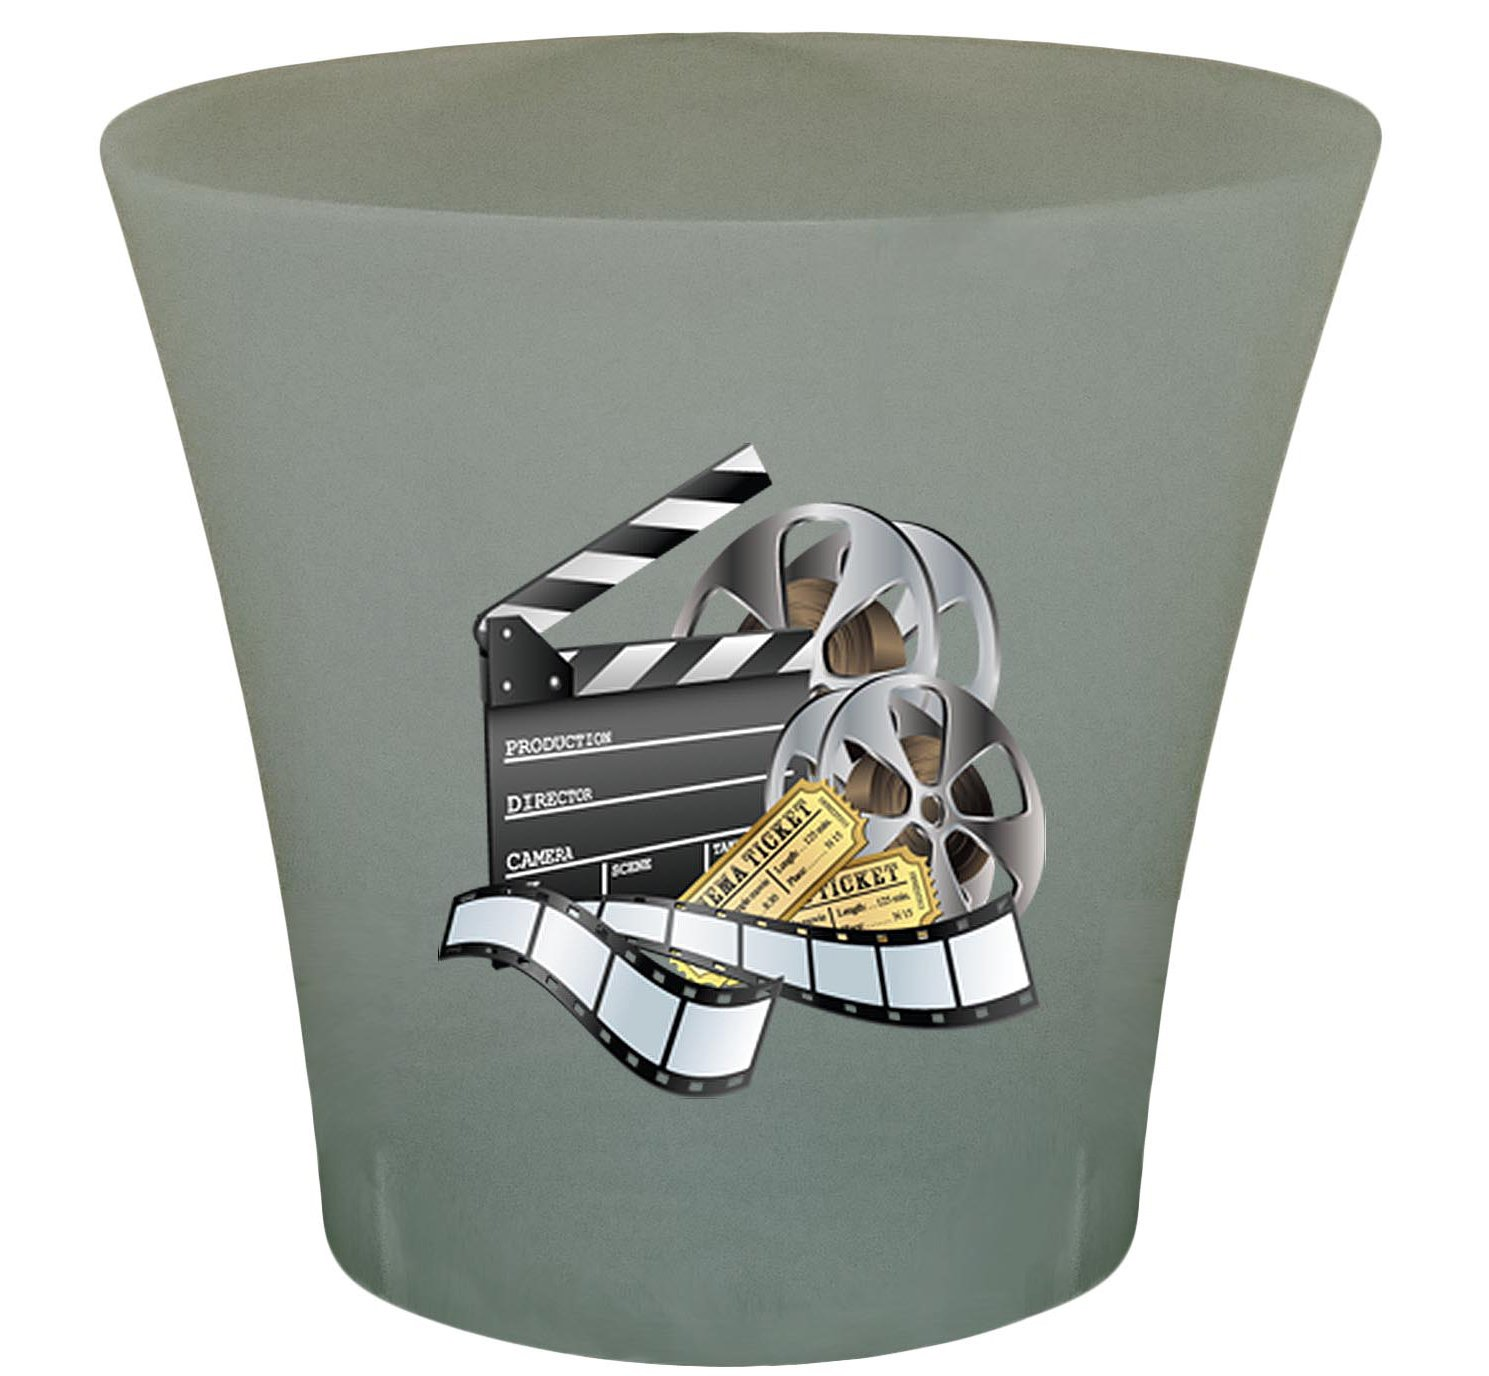 NEW! 3 Gallon Oval Shaped Wastebasket in a Grey Plastic Finish that Features Your Choice of a Novelty Theme Logo and a Free Trash Can Liner! (Movie Reel)